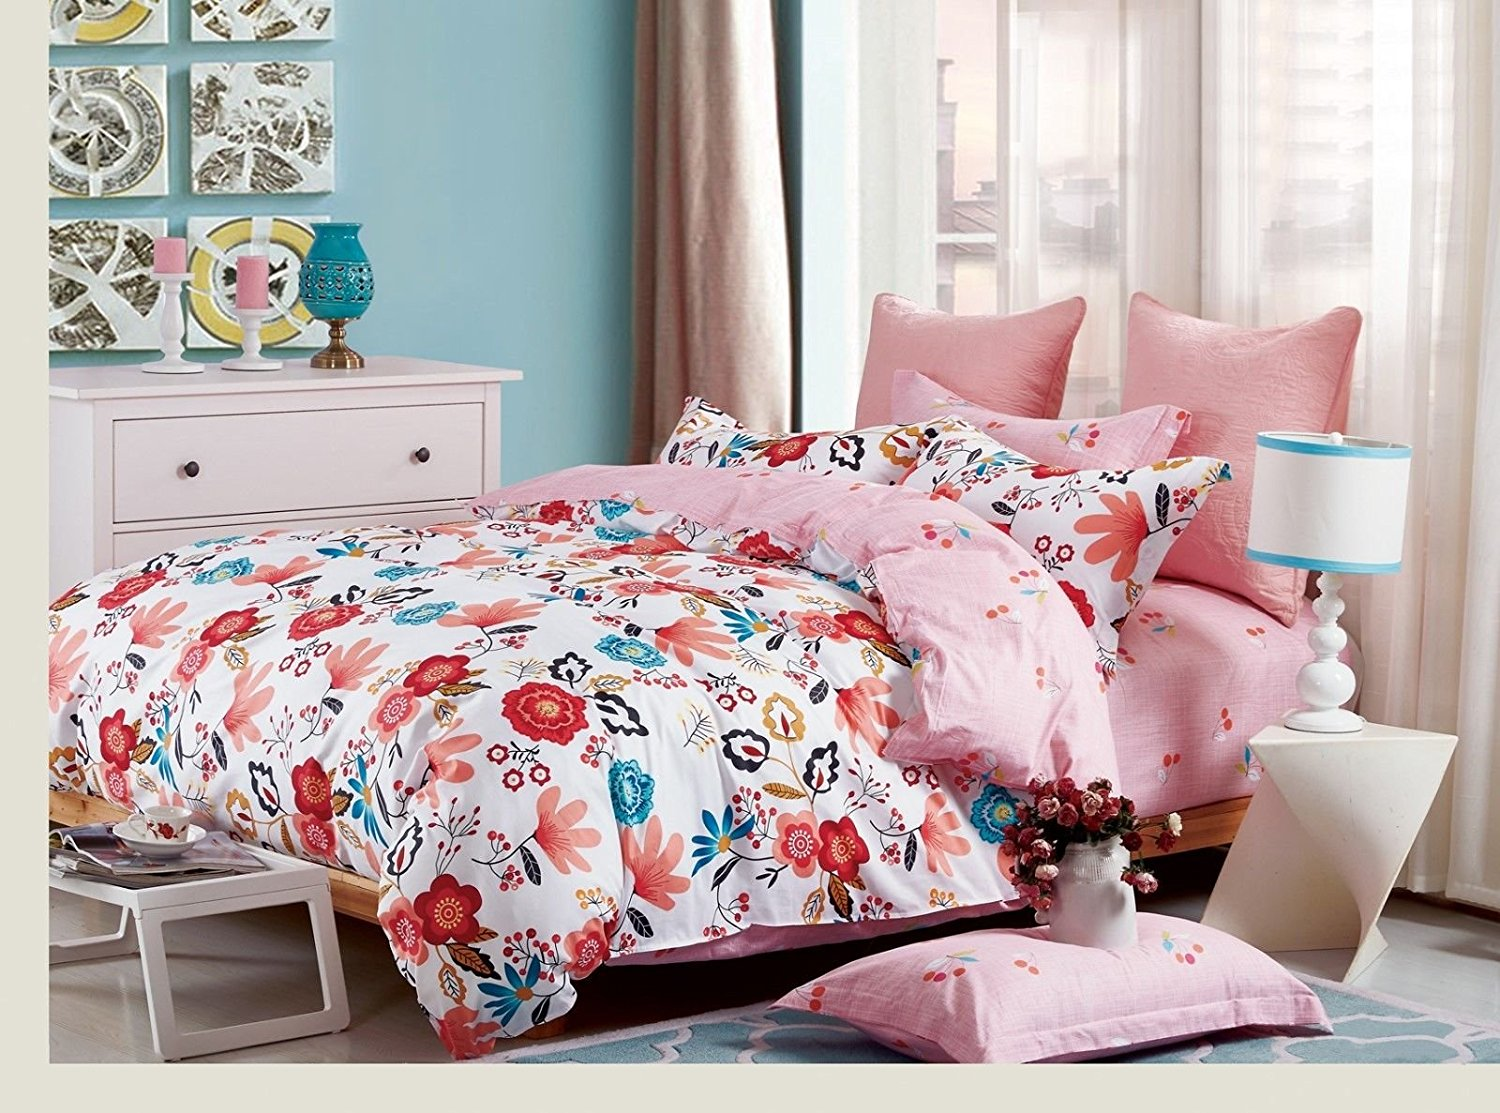 Floral and Cherry King Bed Duvet Set